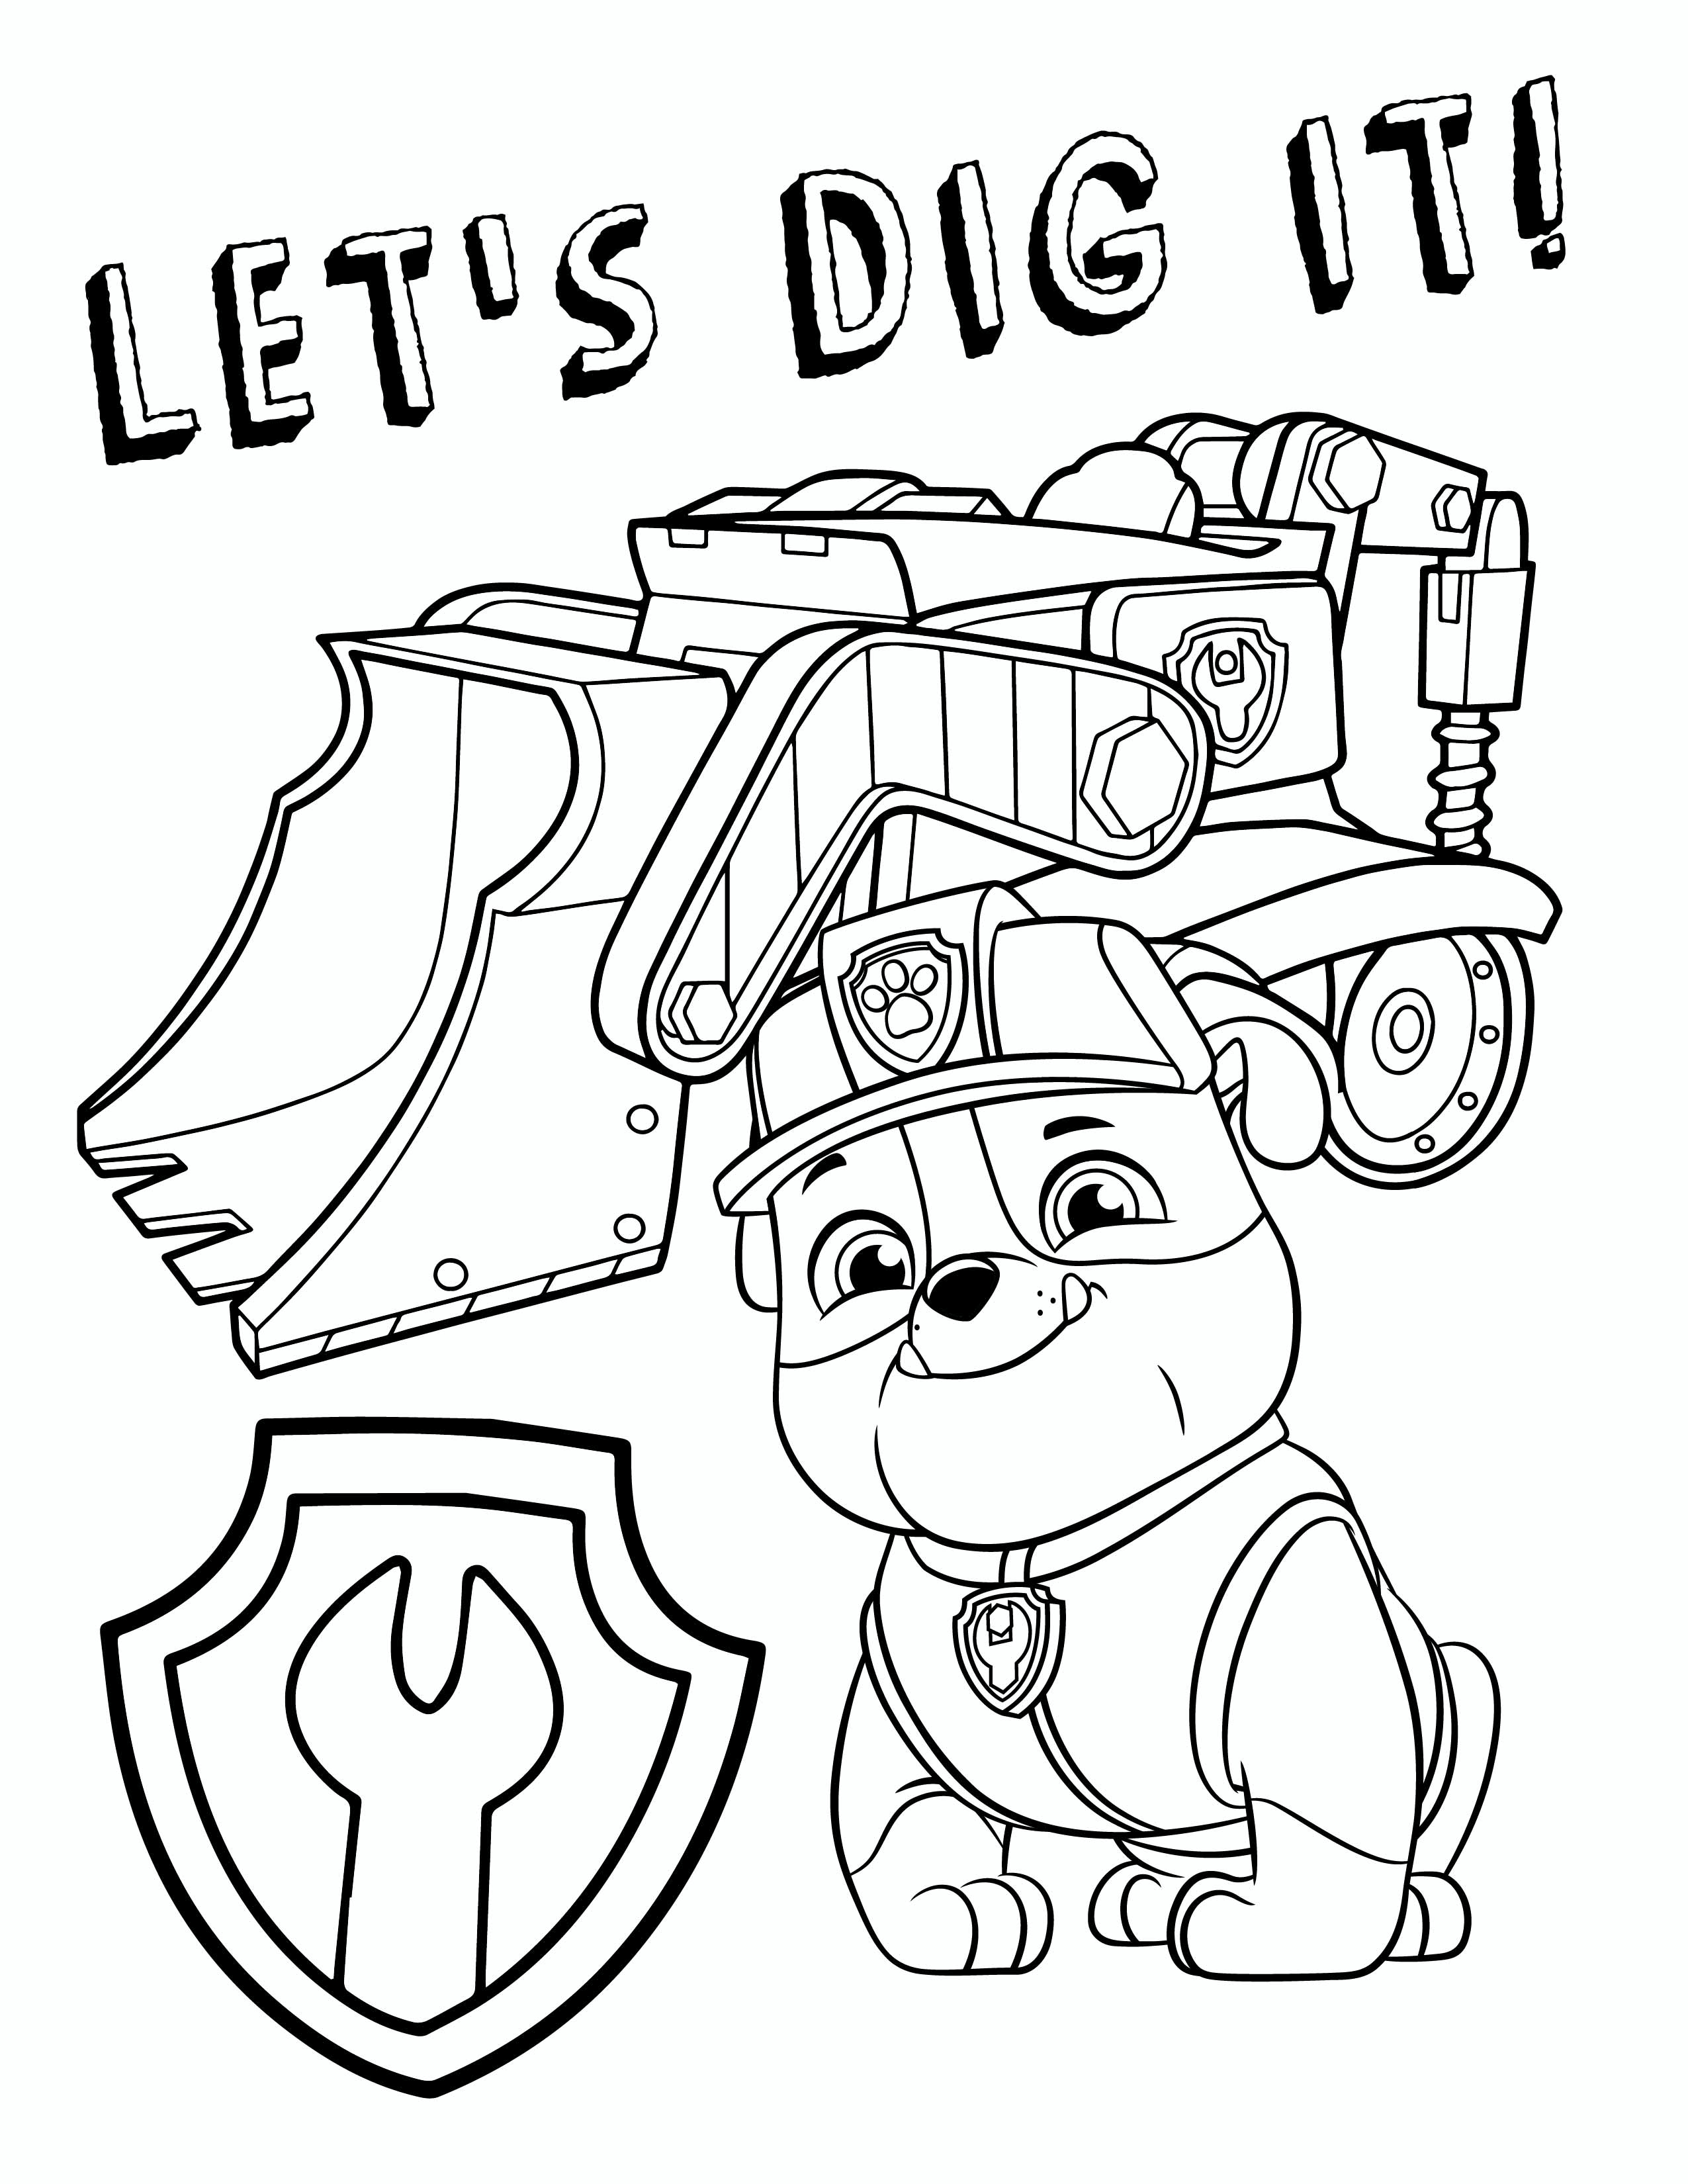 Coloring Pages : Coloring Pages Paw Patrol Free Sheets Printable Of - Free Printable Paw Patrol Coloring Pages